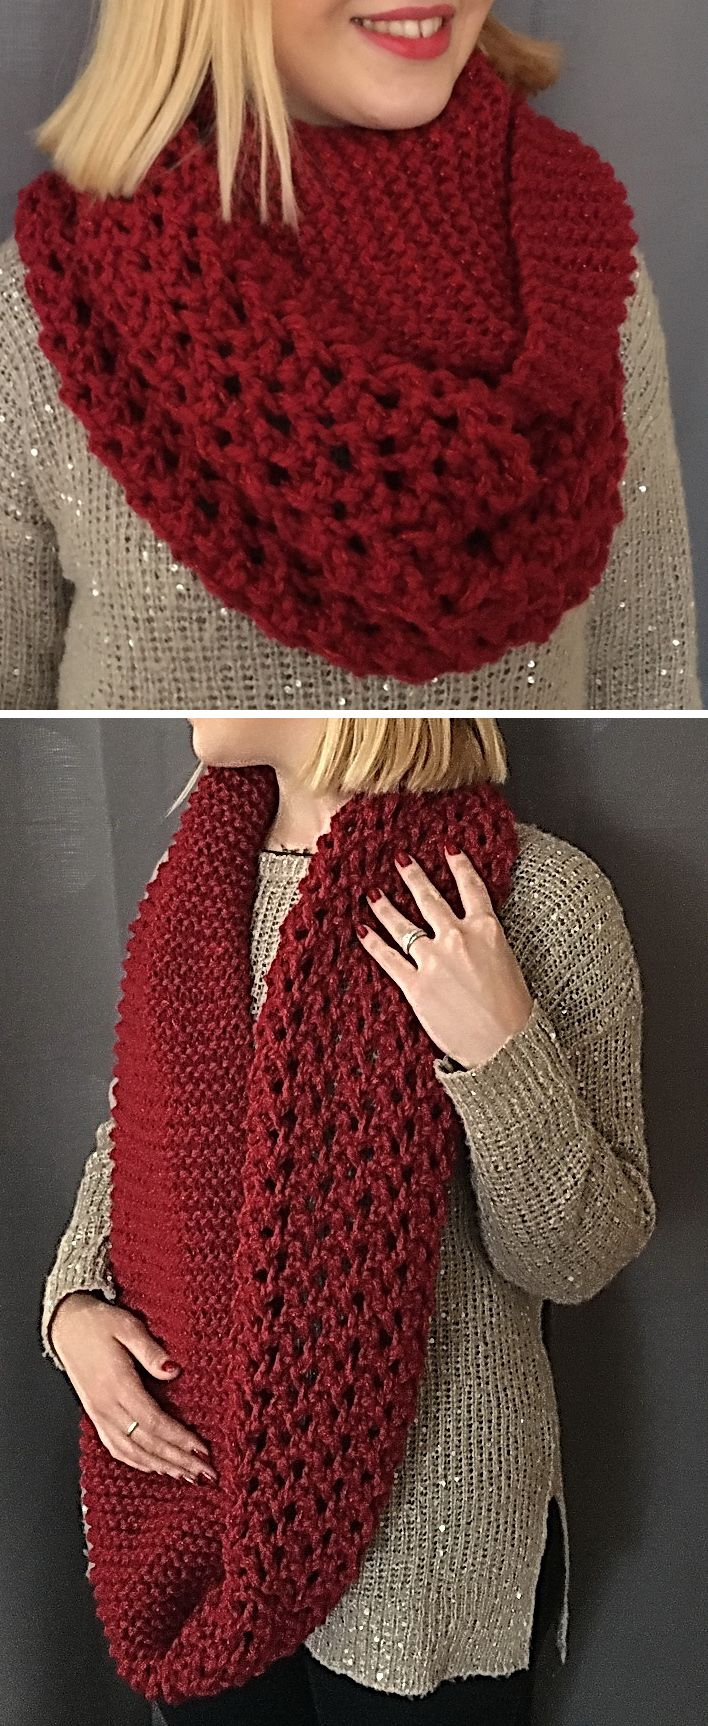 nuovo prodotto 142a9 de87d Free until Jan. 7, 2018 Only Knitting Pattern for Lily Red ...